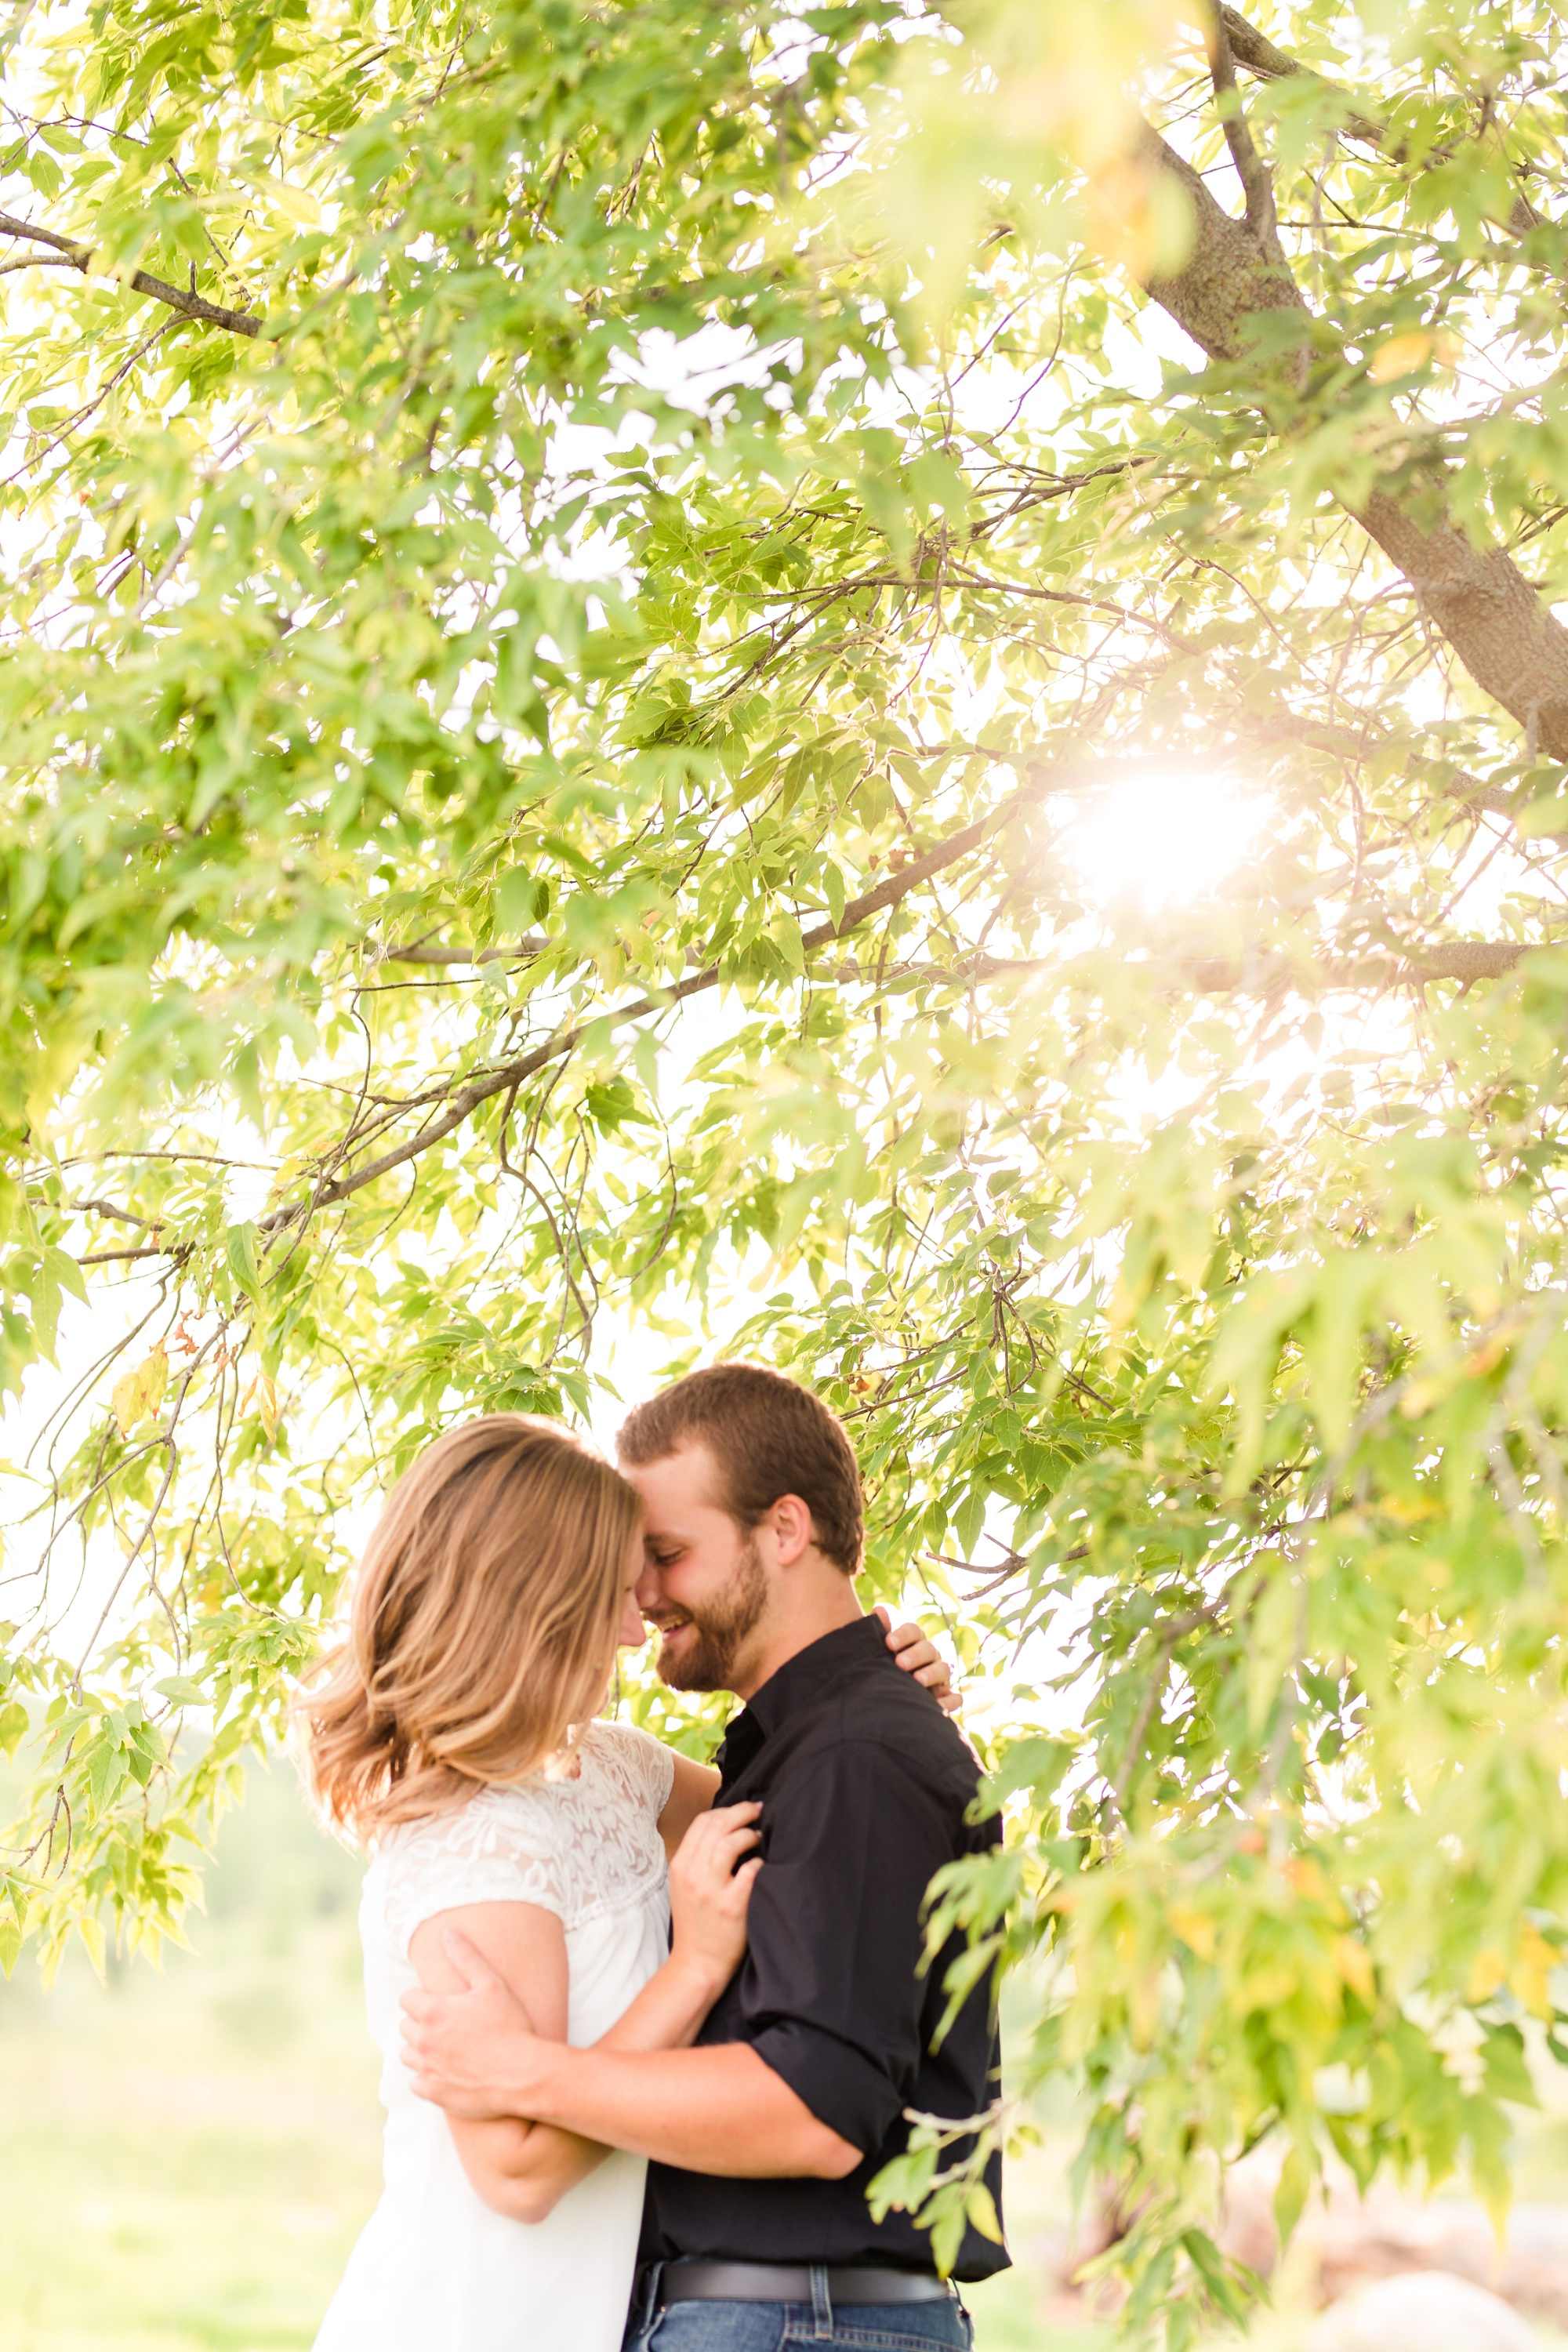 AmberLangerudPhotography_Countryside Engagement Session in Minnesota_3097.jpg